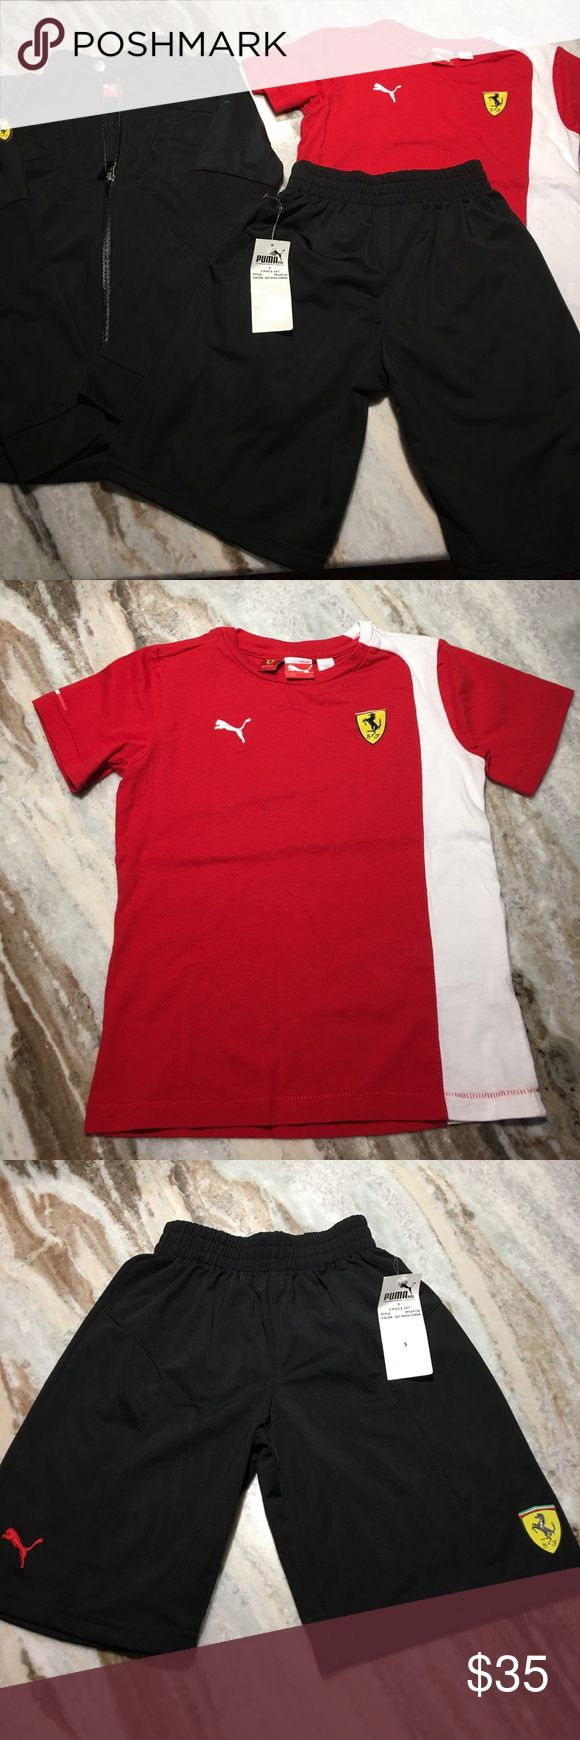 Scuderia Ferrari Puma boys clothes size 5 & 6 I have for sale a 3 piece set of boys clothing size 5 & 6. Included are : 1 Puma Scuderia Ferrari short sleeve shirt size 6. Shirt was only used once. 1- Black shorts size 5. Shorts are new with tags. 1- houma Scuderia Ferrari black sweater. Sweater was also just use once. it is a size 6 puma Scuderia Ferrari Other